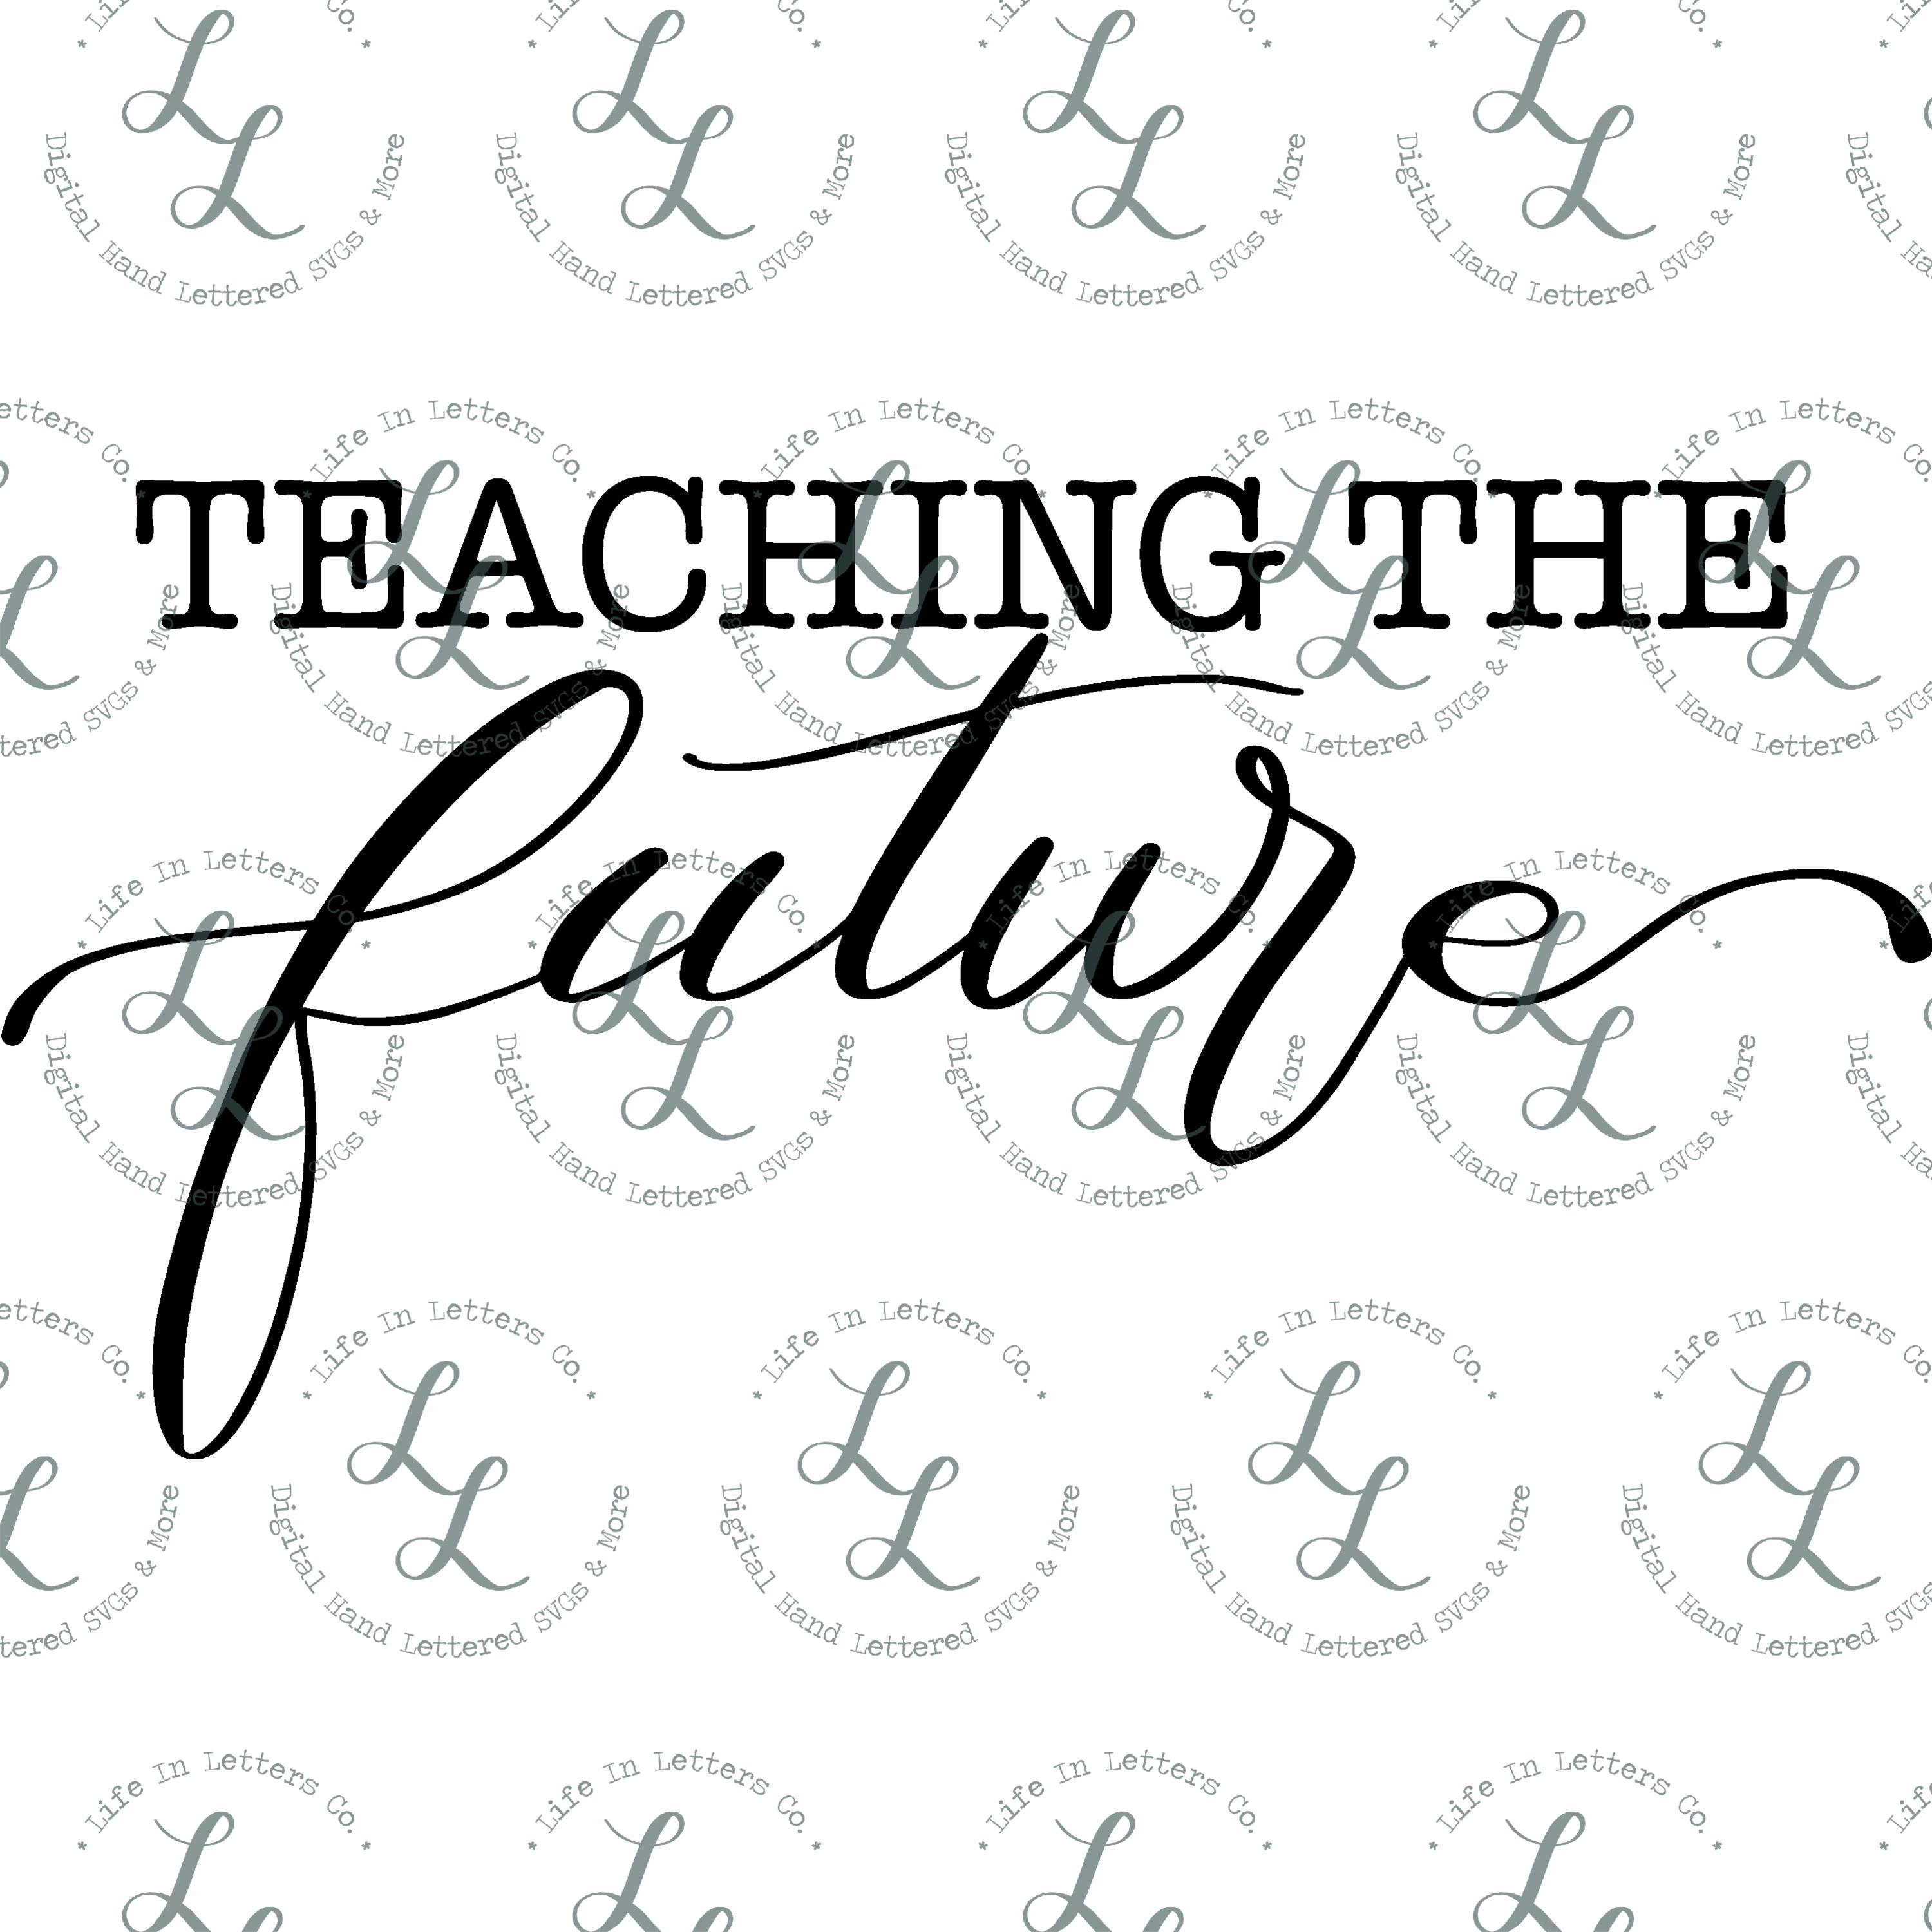 Teaching The Future - Cut File, SVG, PNG, EPS, DXF example image 2